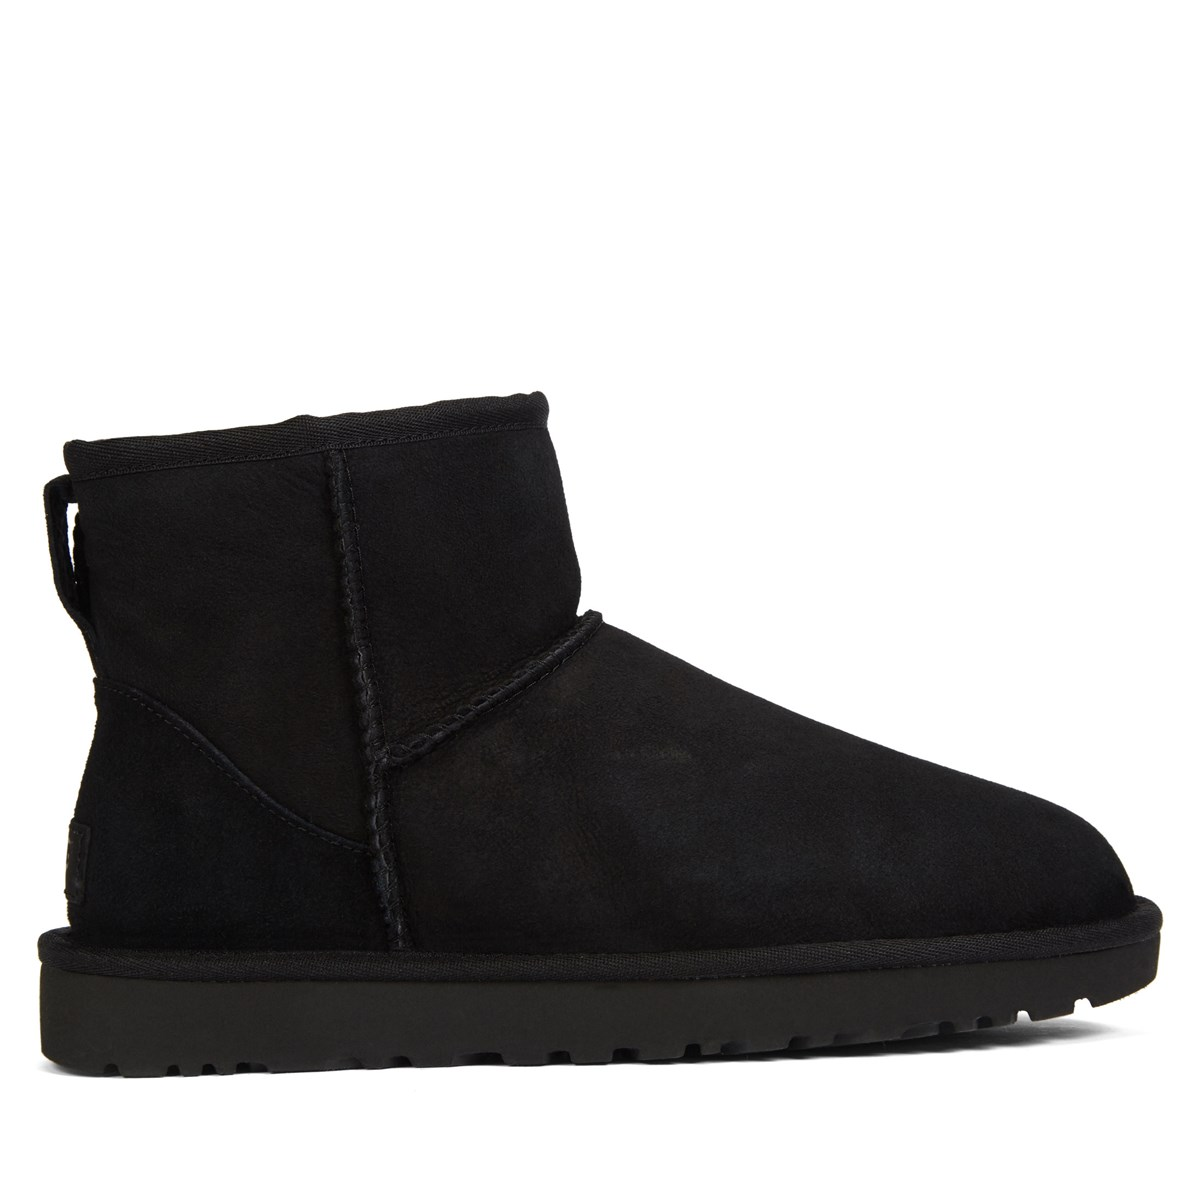 Women's Classic Mini II Boots in Black